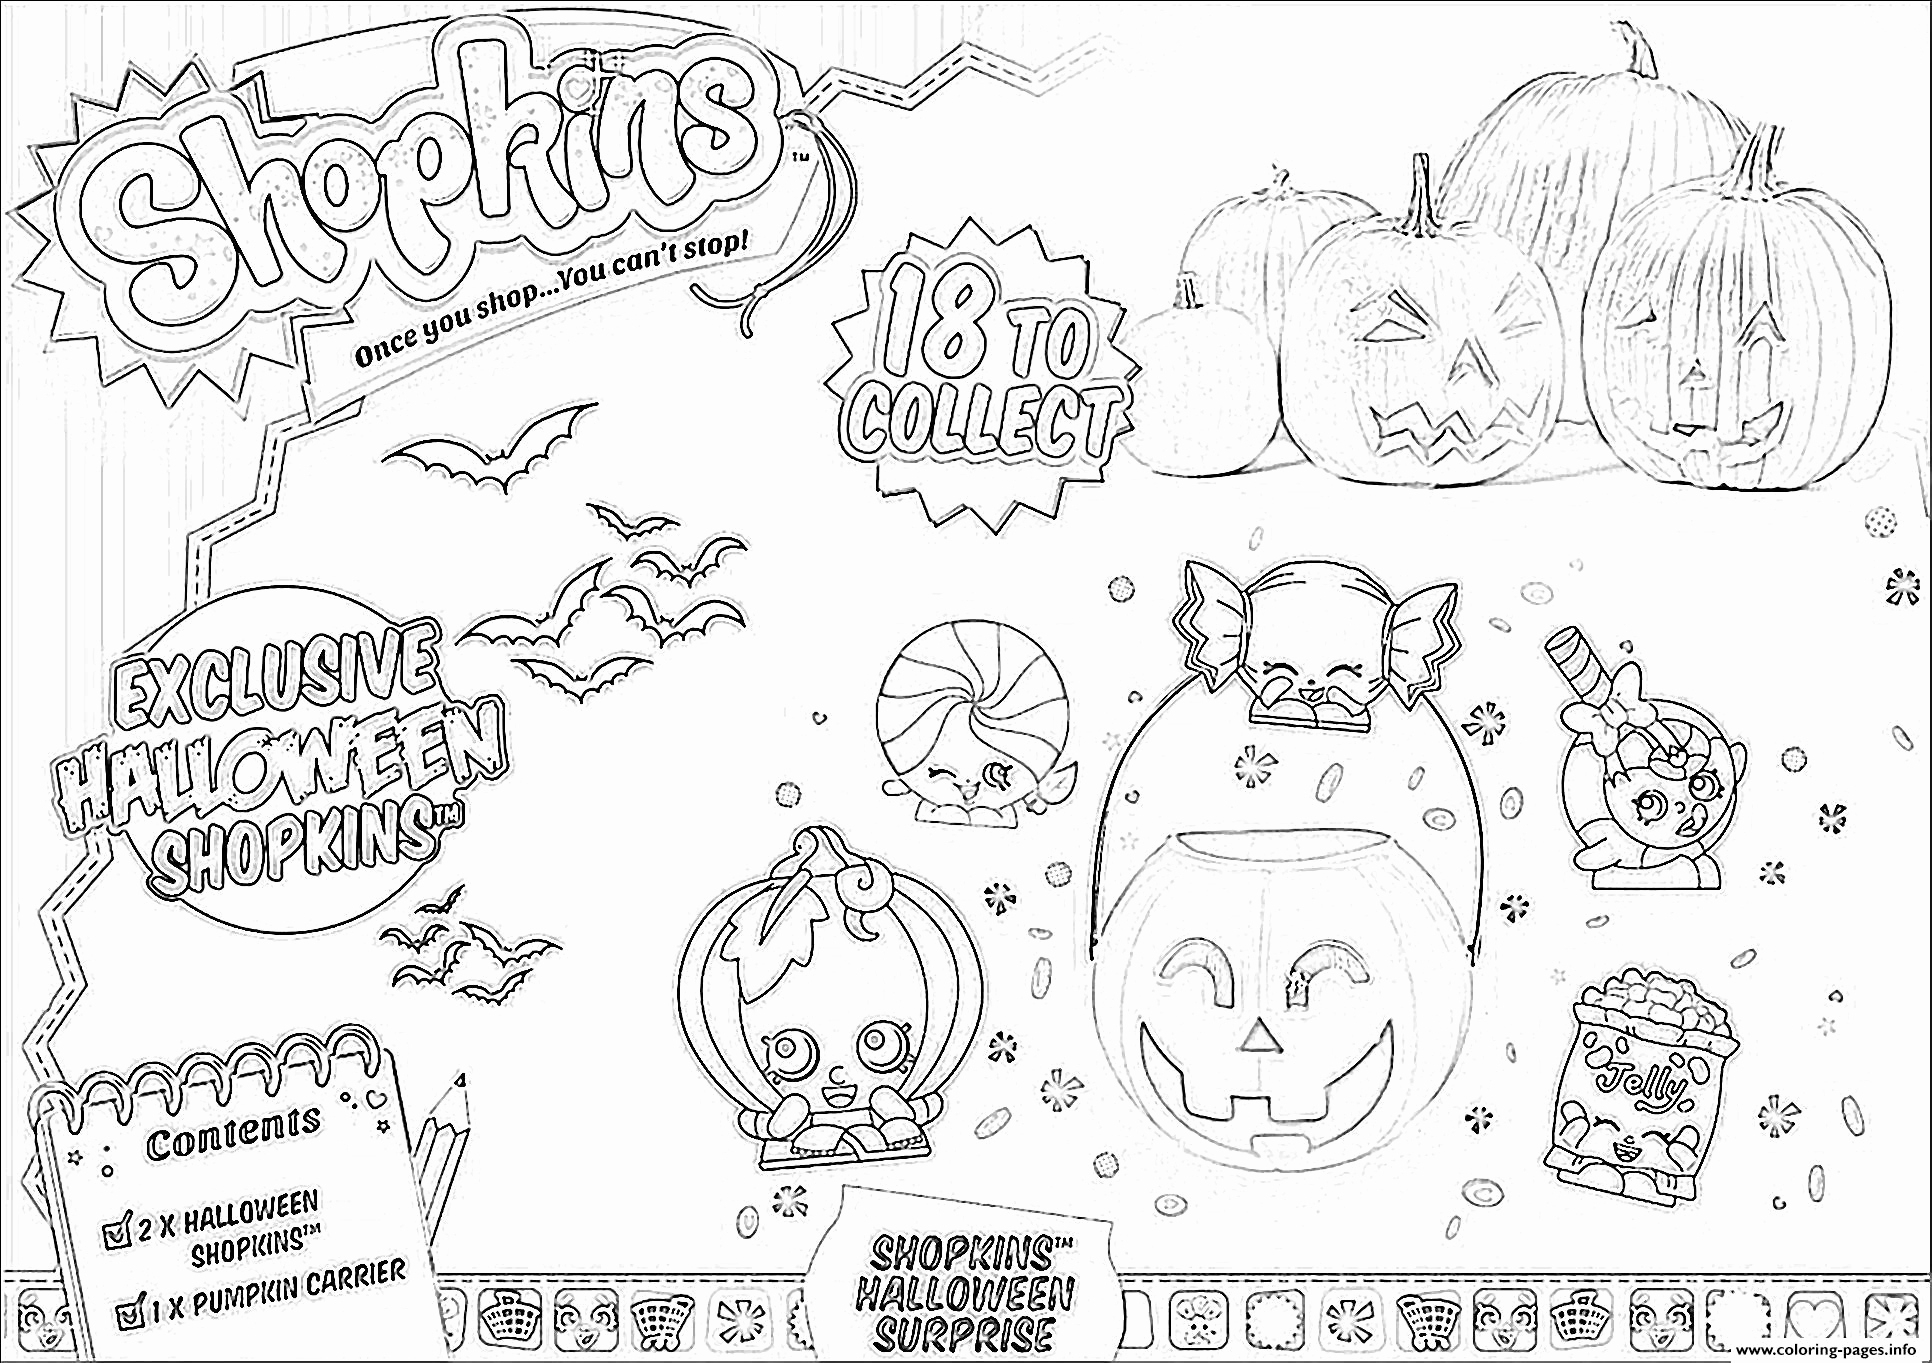 free disney halloween coloring pages Download-Best Disney Halloween Coloring Pages Elegant Fresh S S Media Cache Ak0 18-c